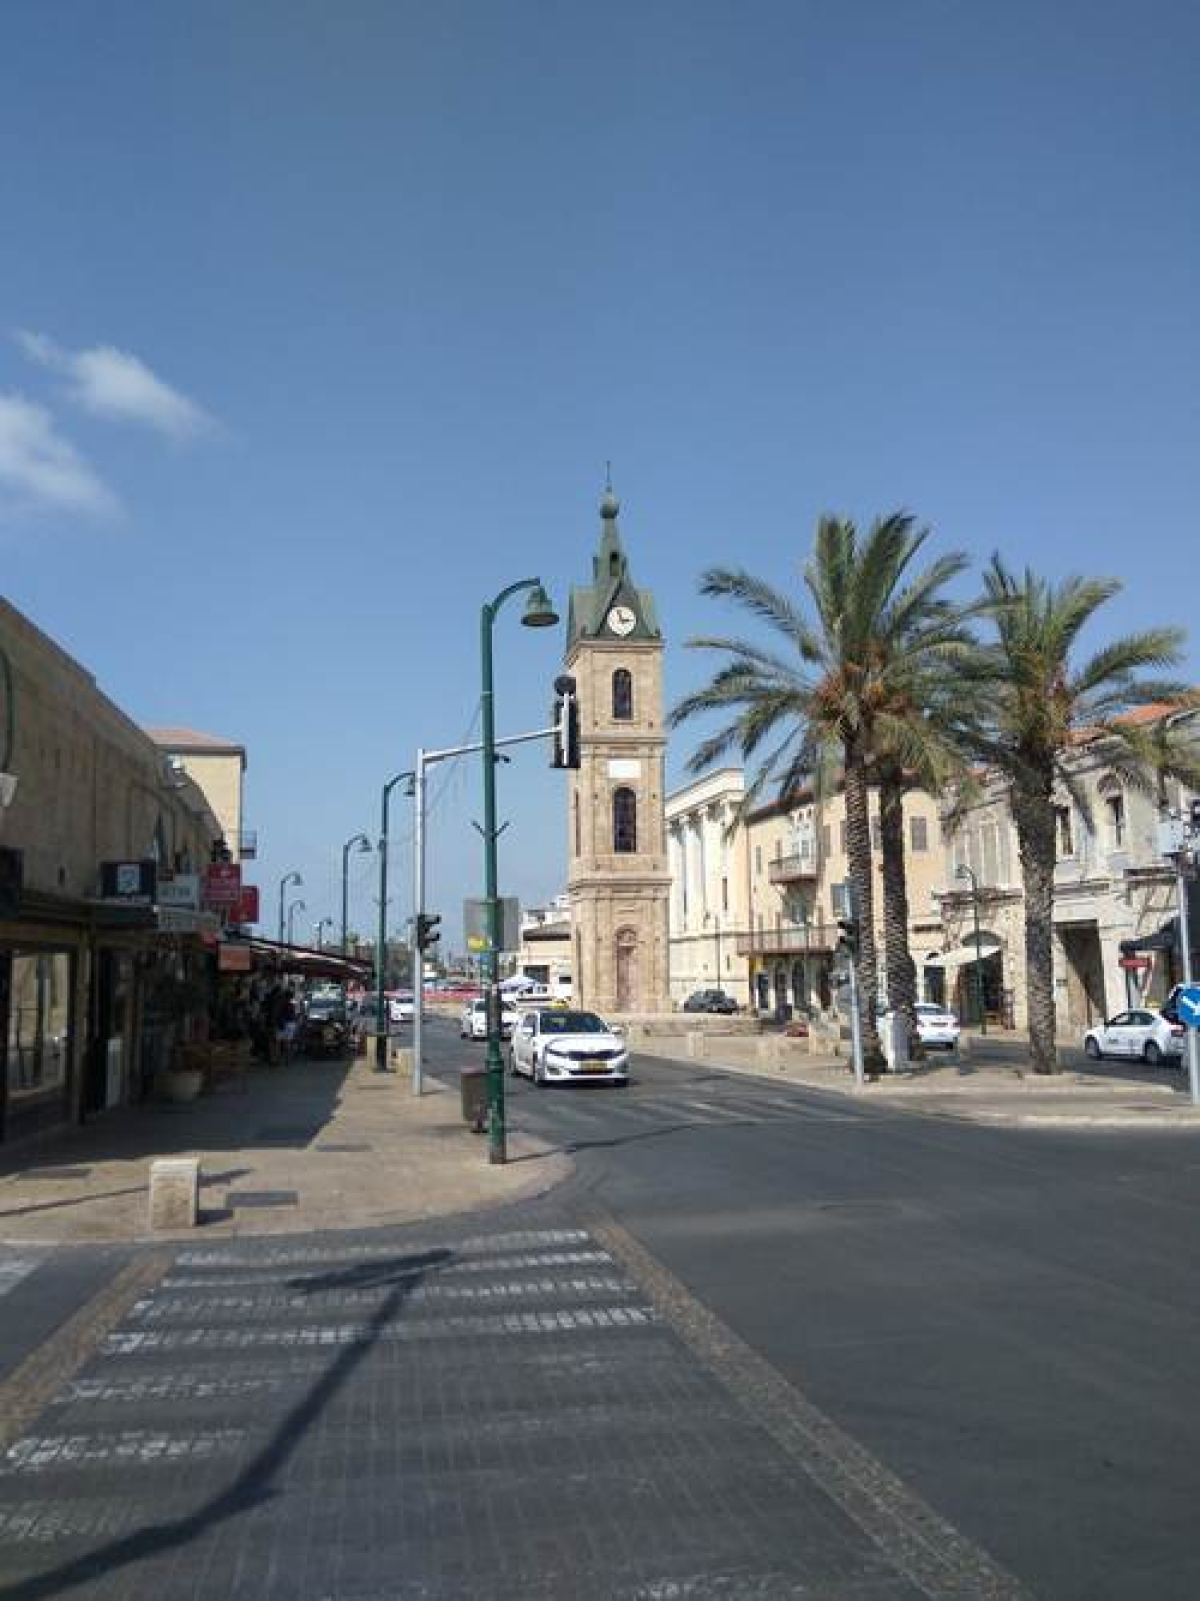 The clock tower at the entrance to Jaffa